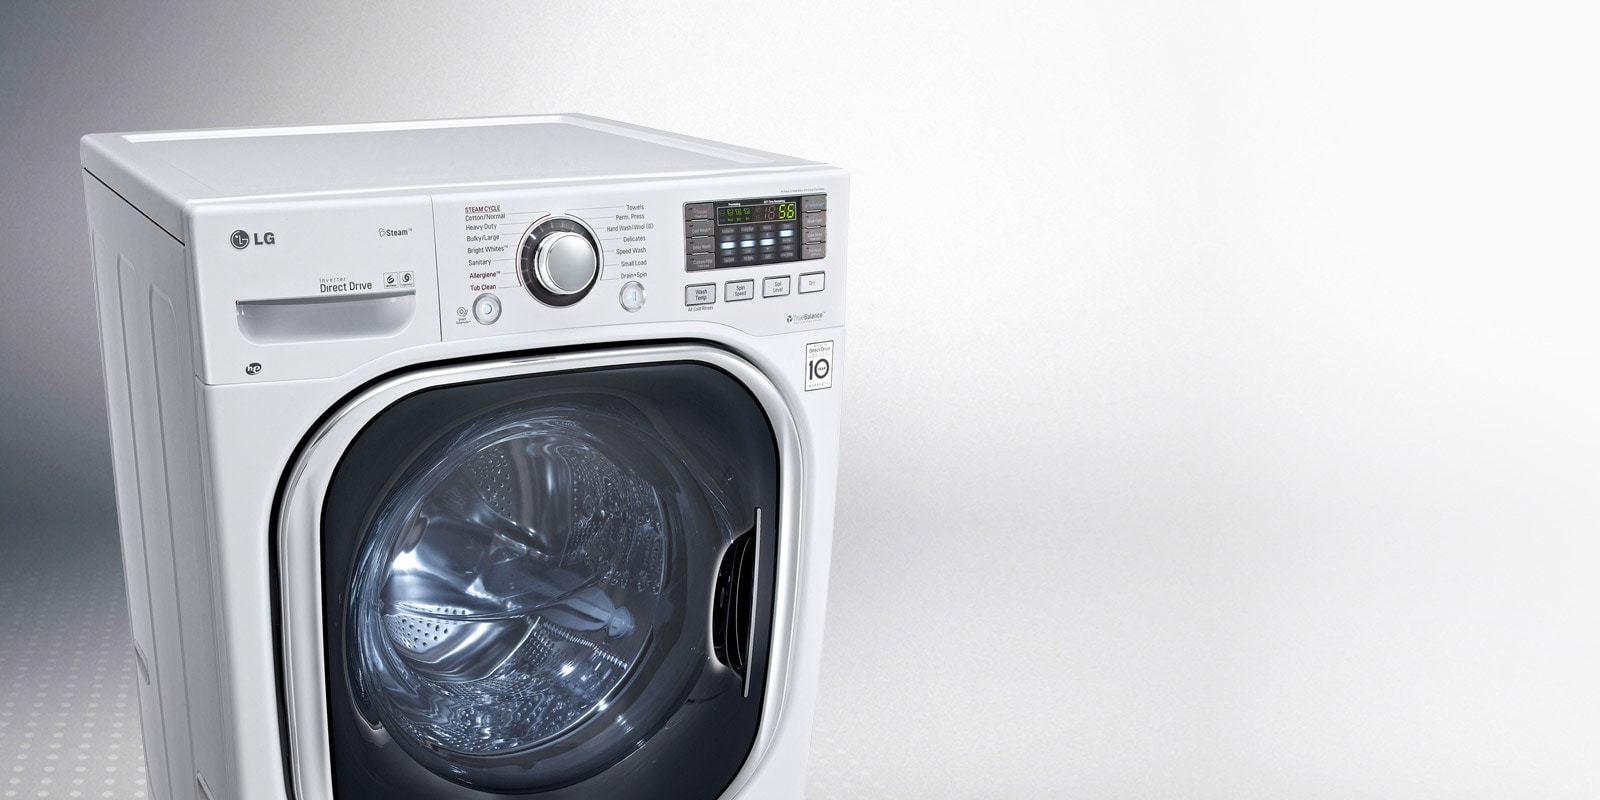 Washing Machines And Dryers ~ Lg washer dryer combos wash faster save energy canada